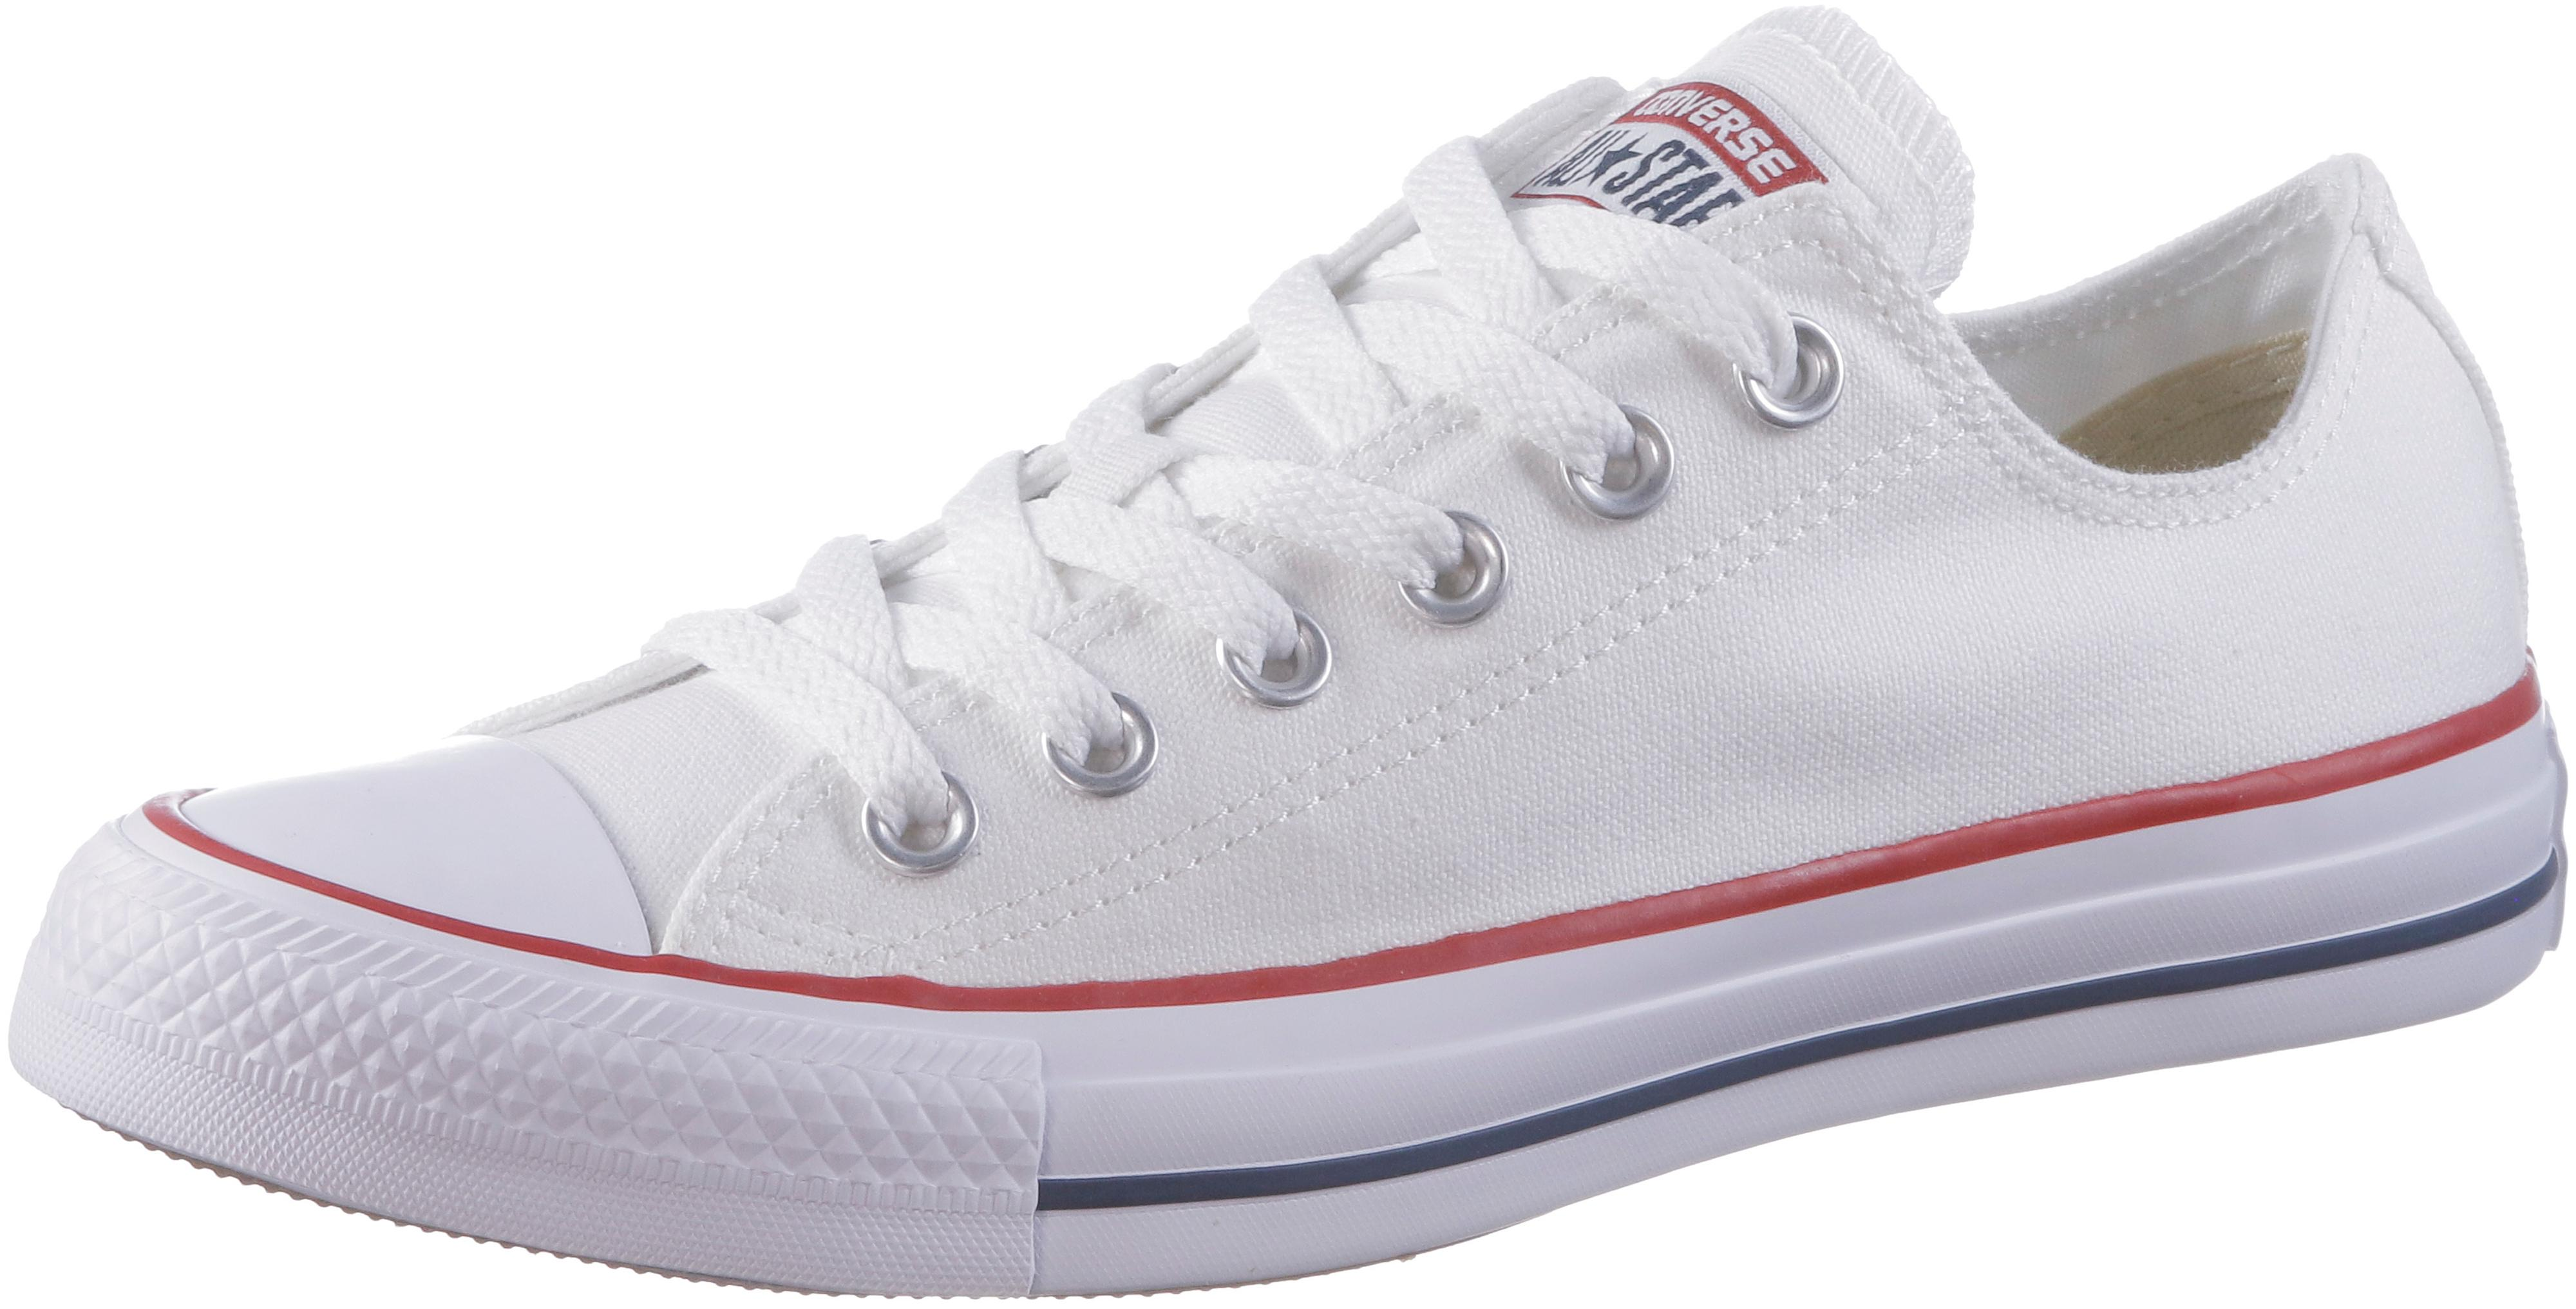 Fein Converse Chuck Taylor All Star Low Herren Sneakers Rot